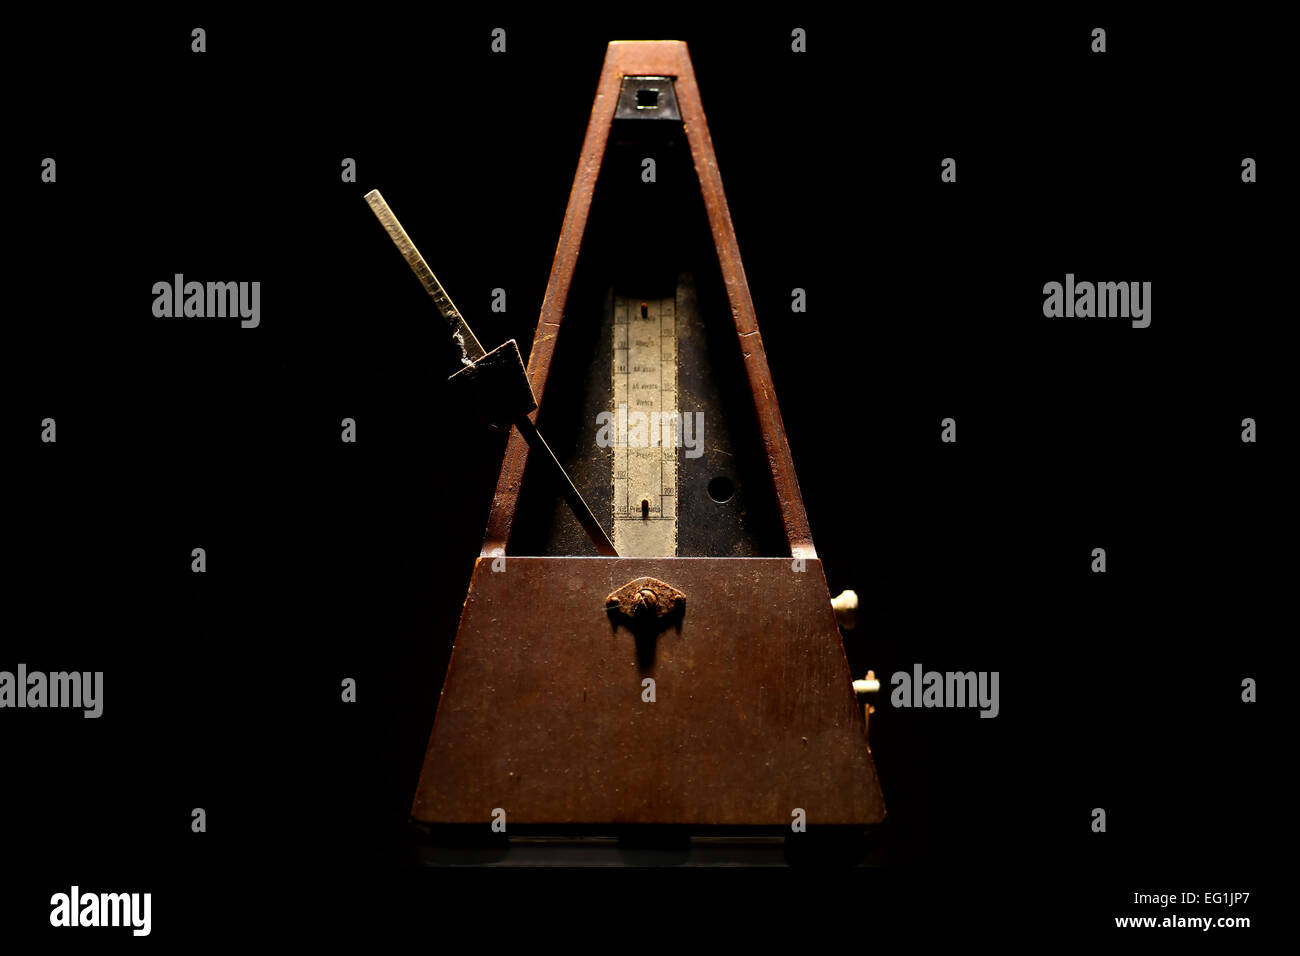 Vertical shot of a vintage metronome, on a black background. - Stock Image